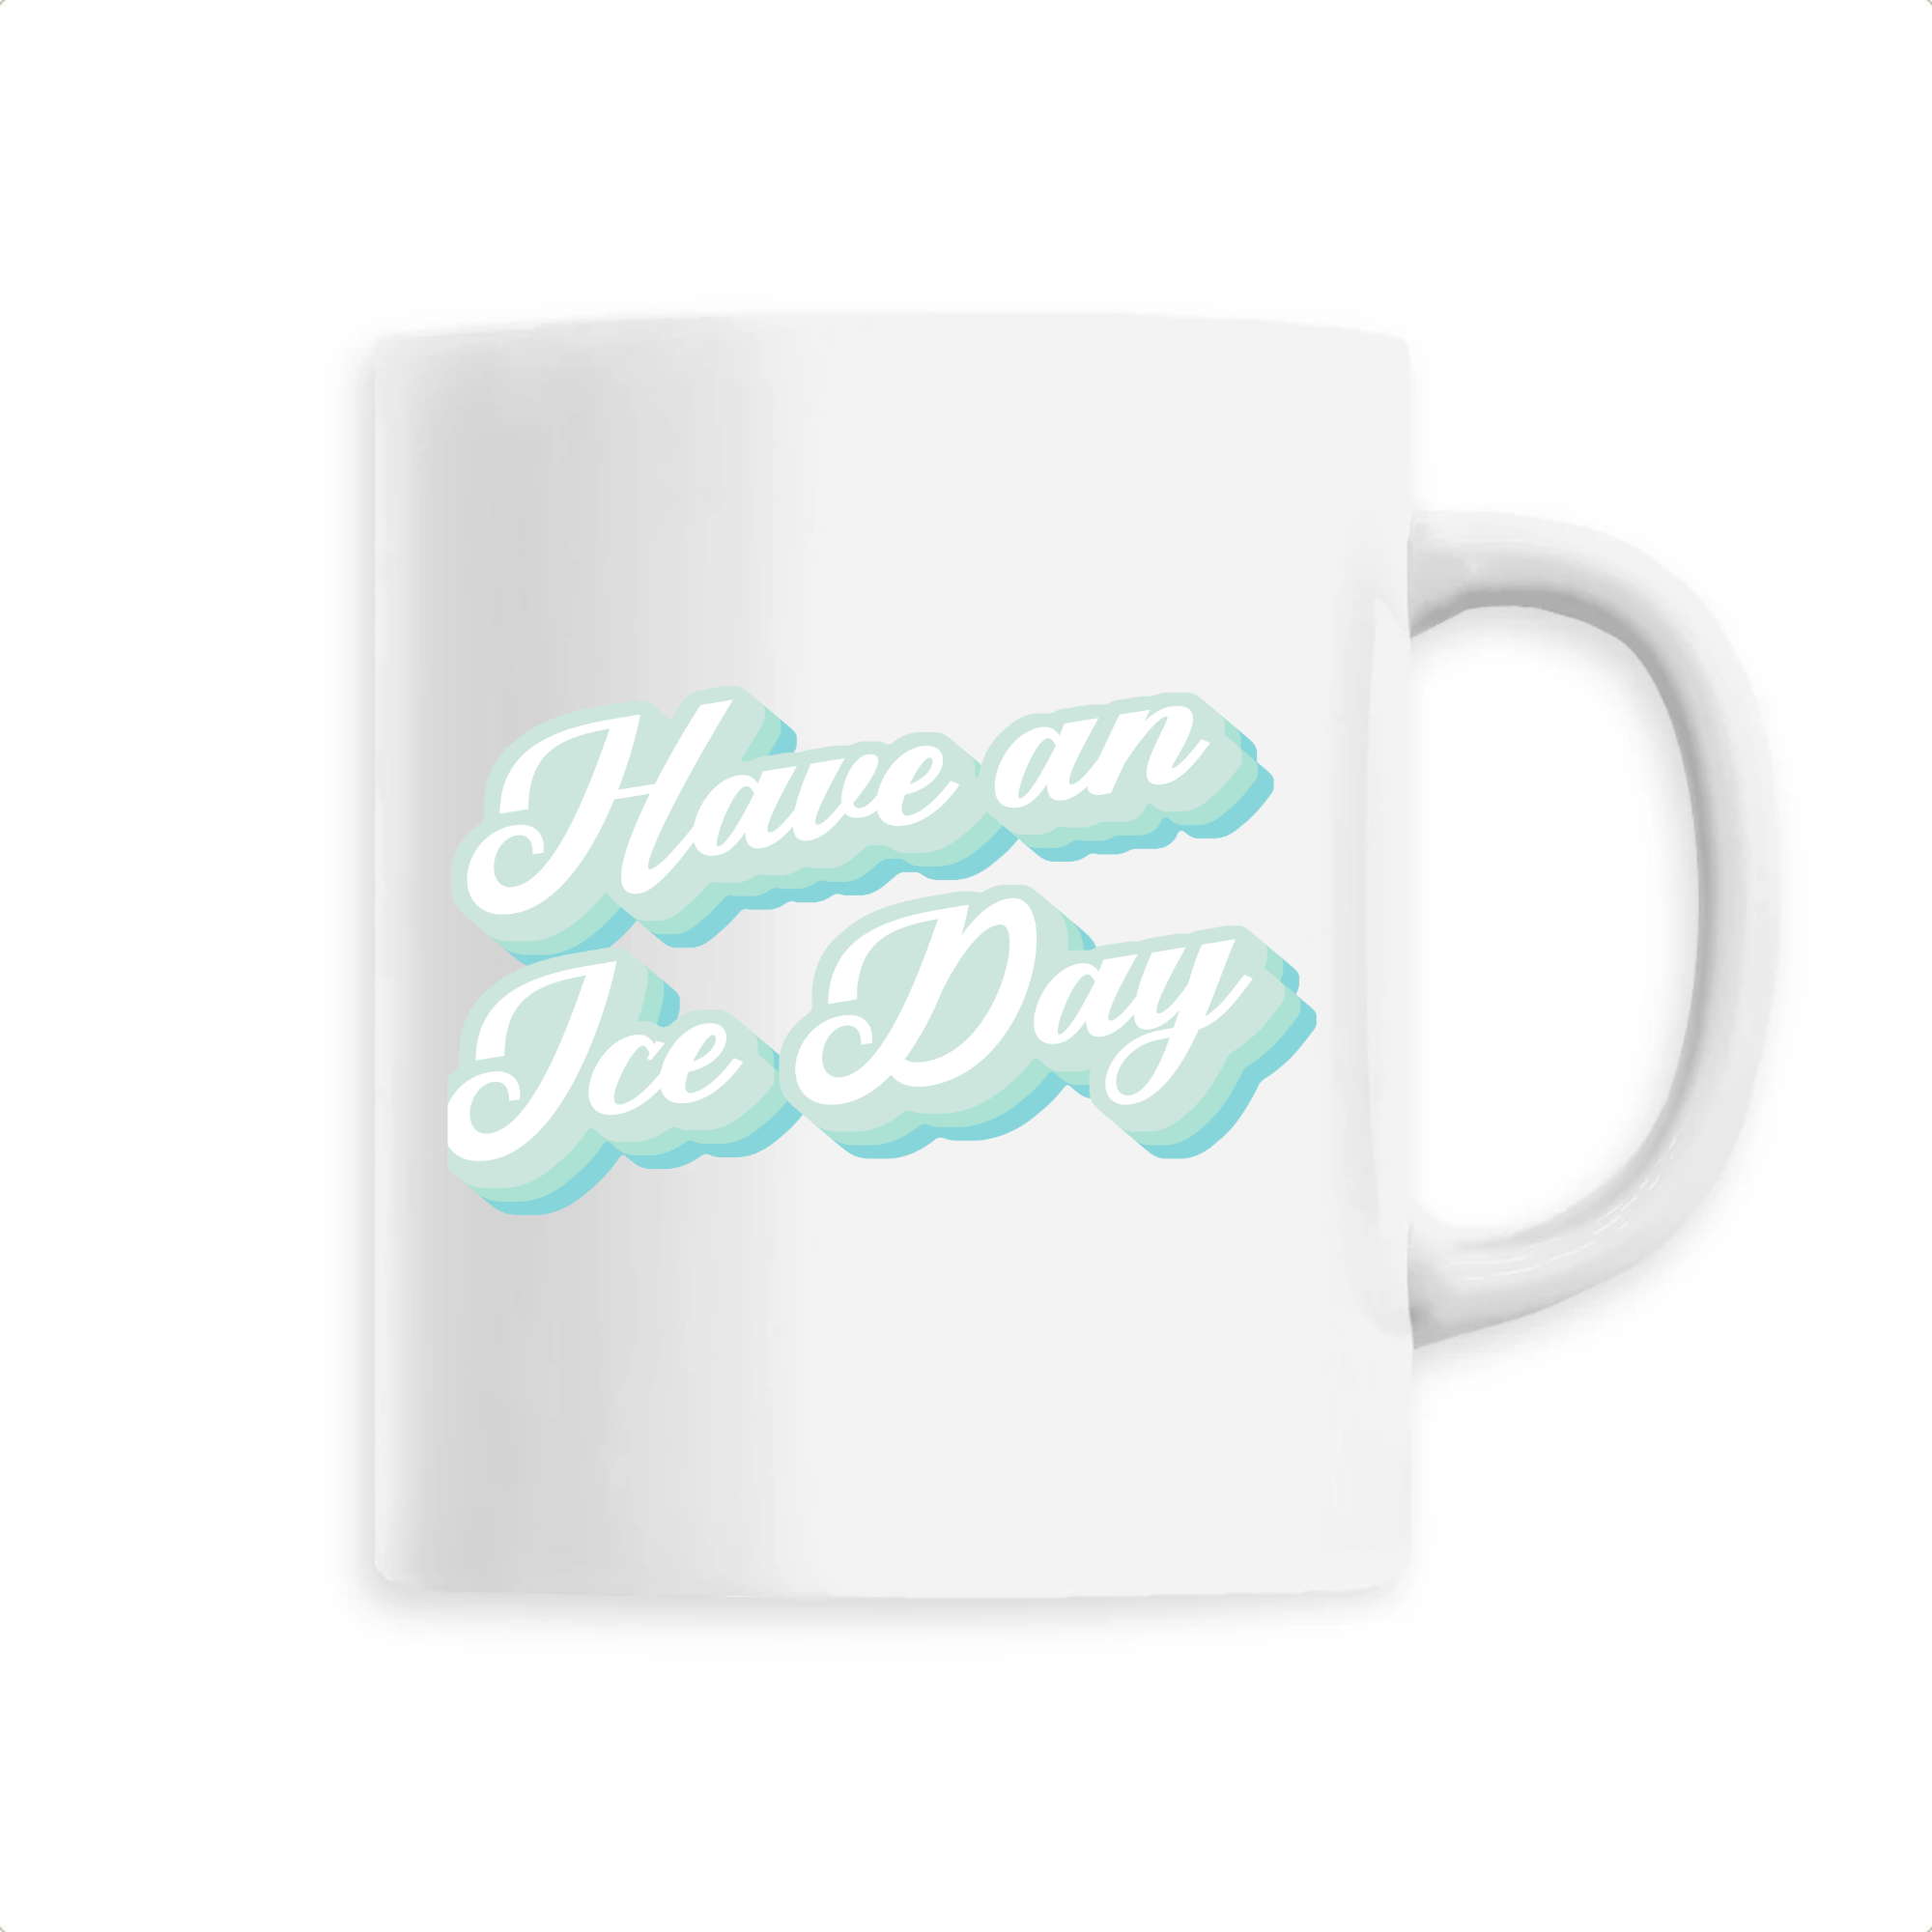 MUG CÉRAMIQUE - ICE DAY BLUE